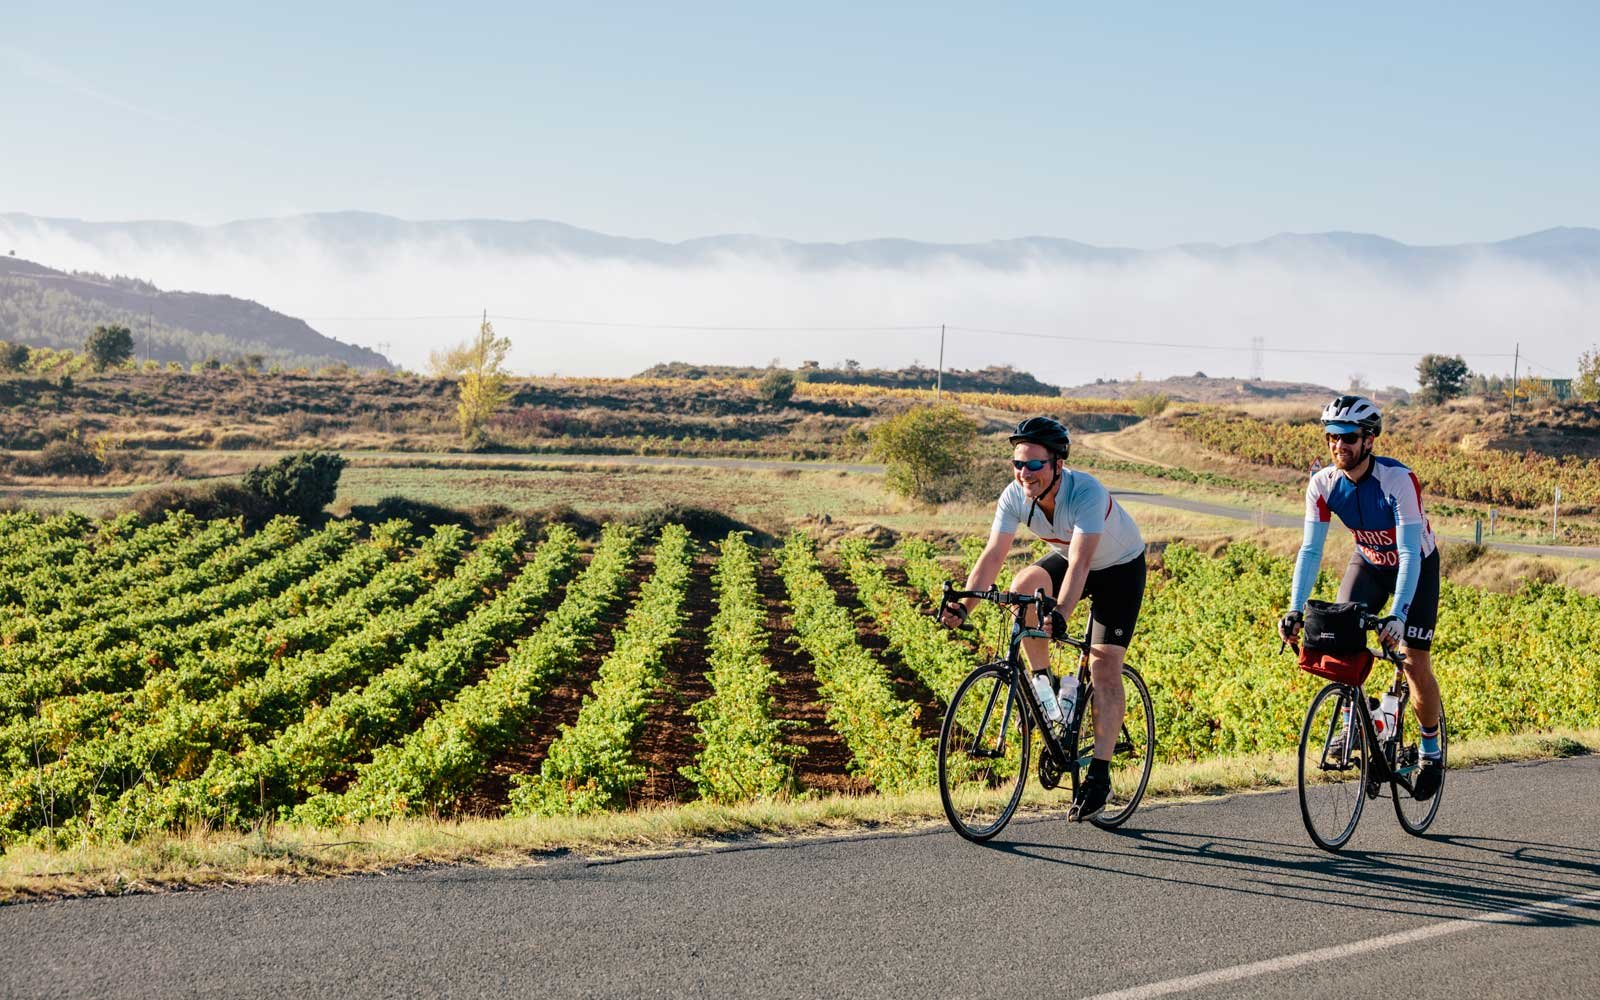 Cycling trip through Rioja, Spain